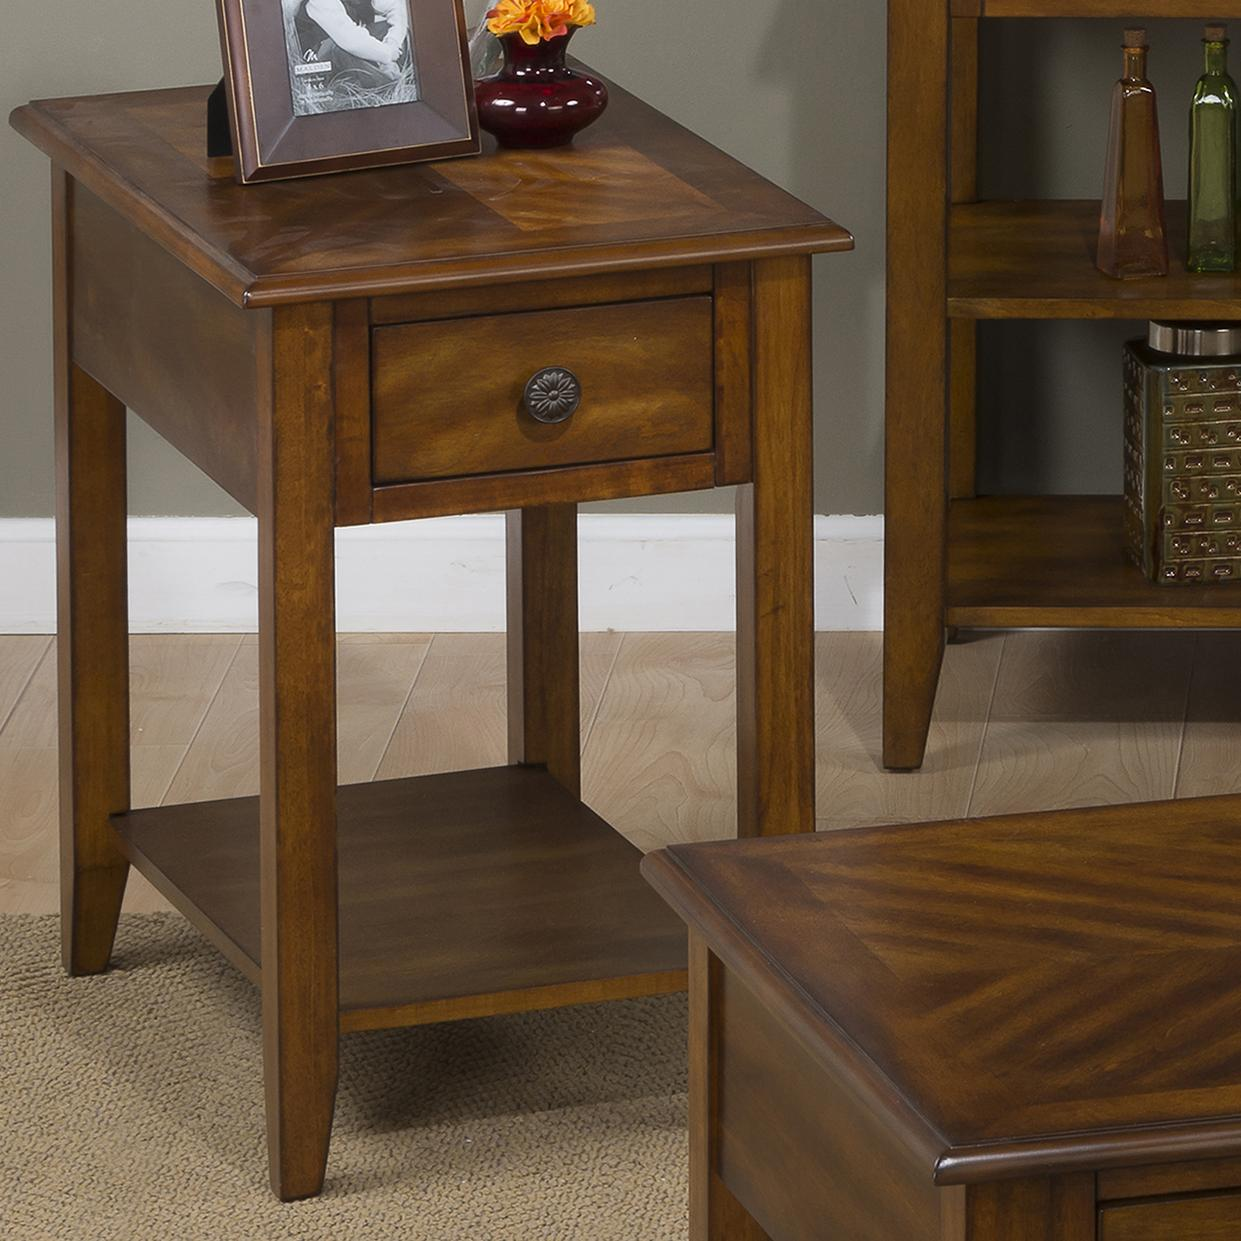 Medium Brown Chairside Table for Small and Compact Spaces